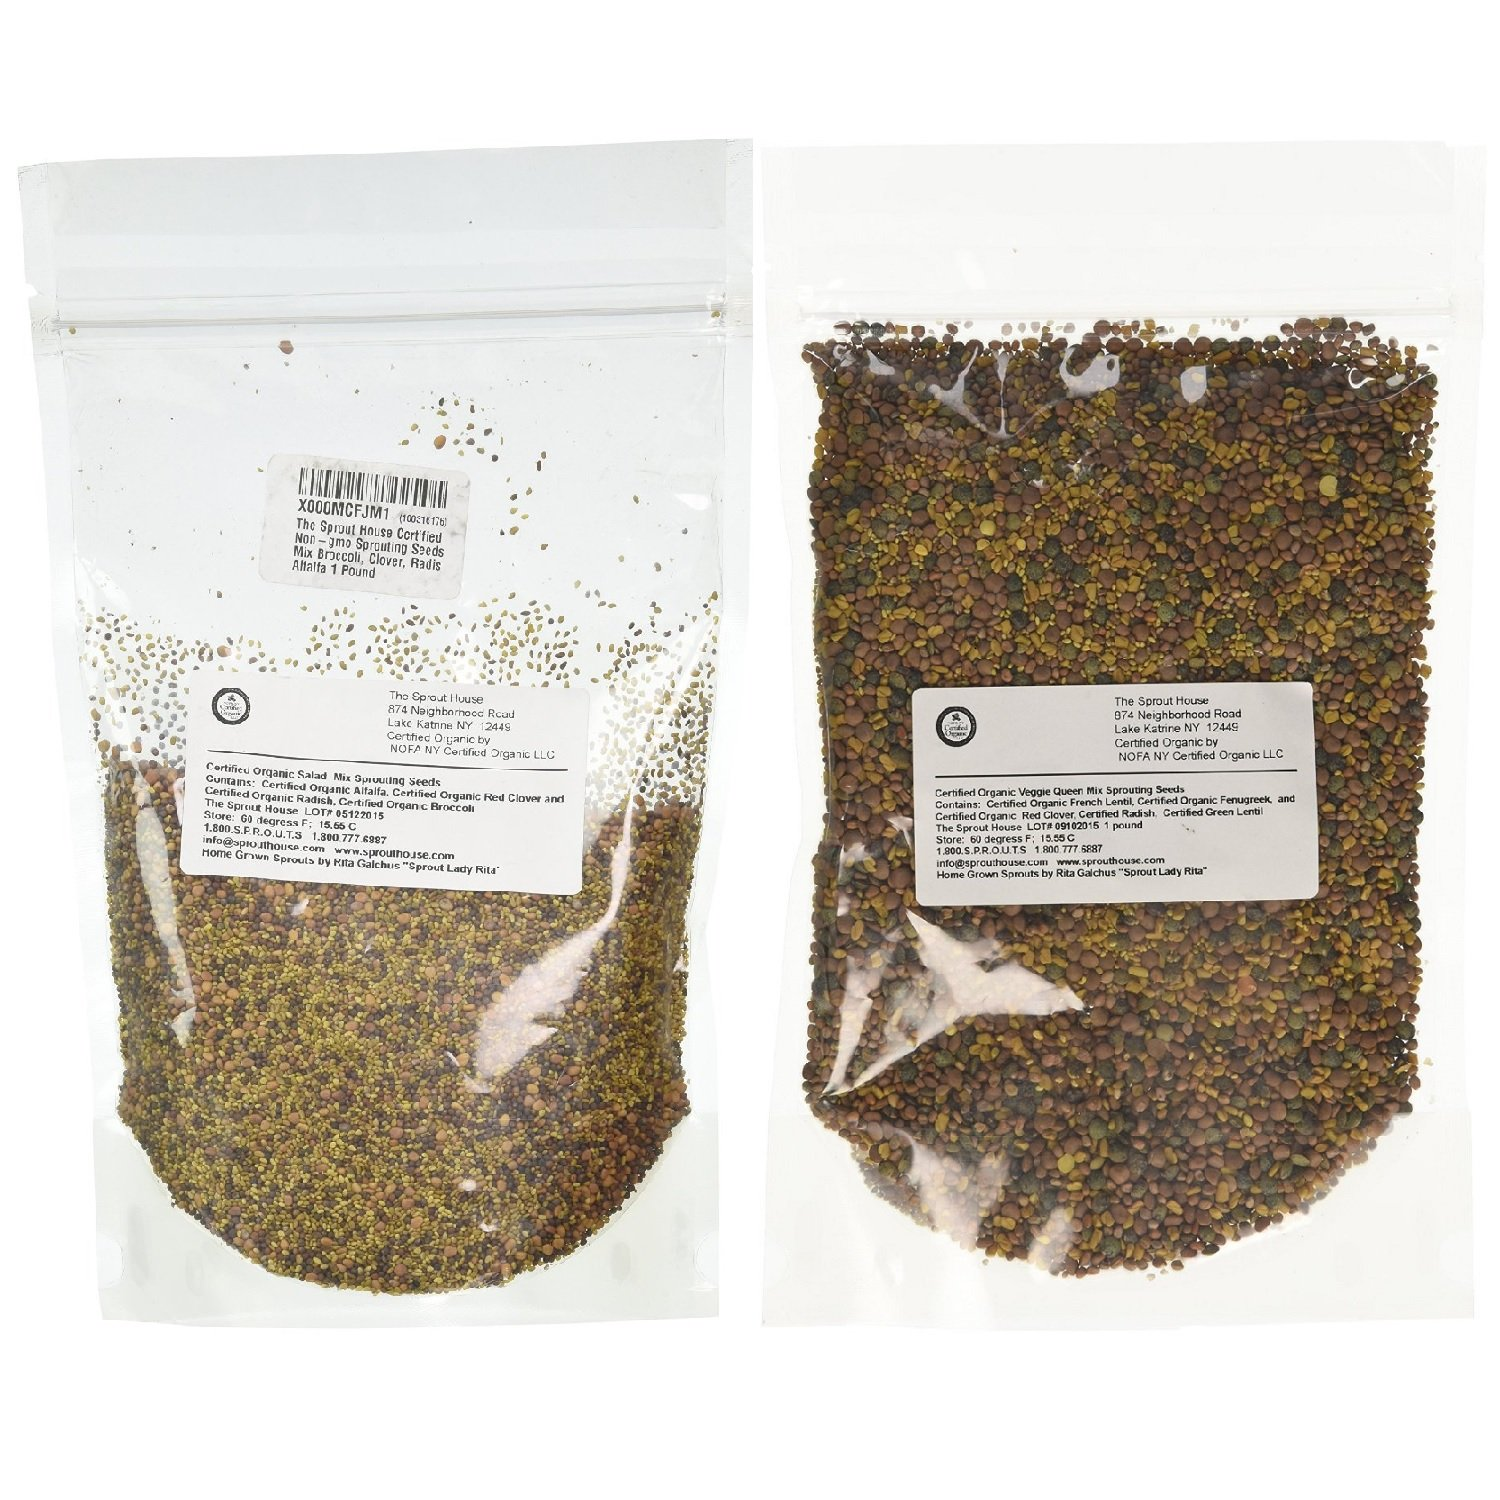 The Sprout House - Certified Organic Sprouting Seeds Salad Mix Kit - Veggie Queen and Salad Sprout Mix Flavors by The Sprout House